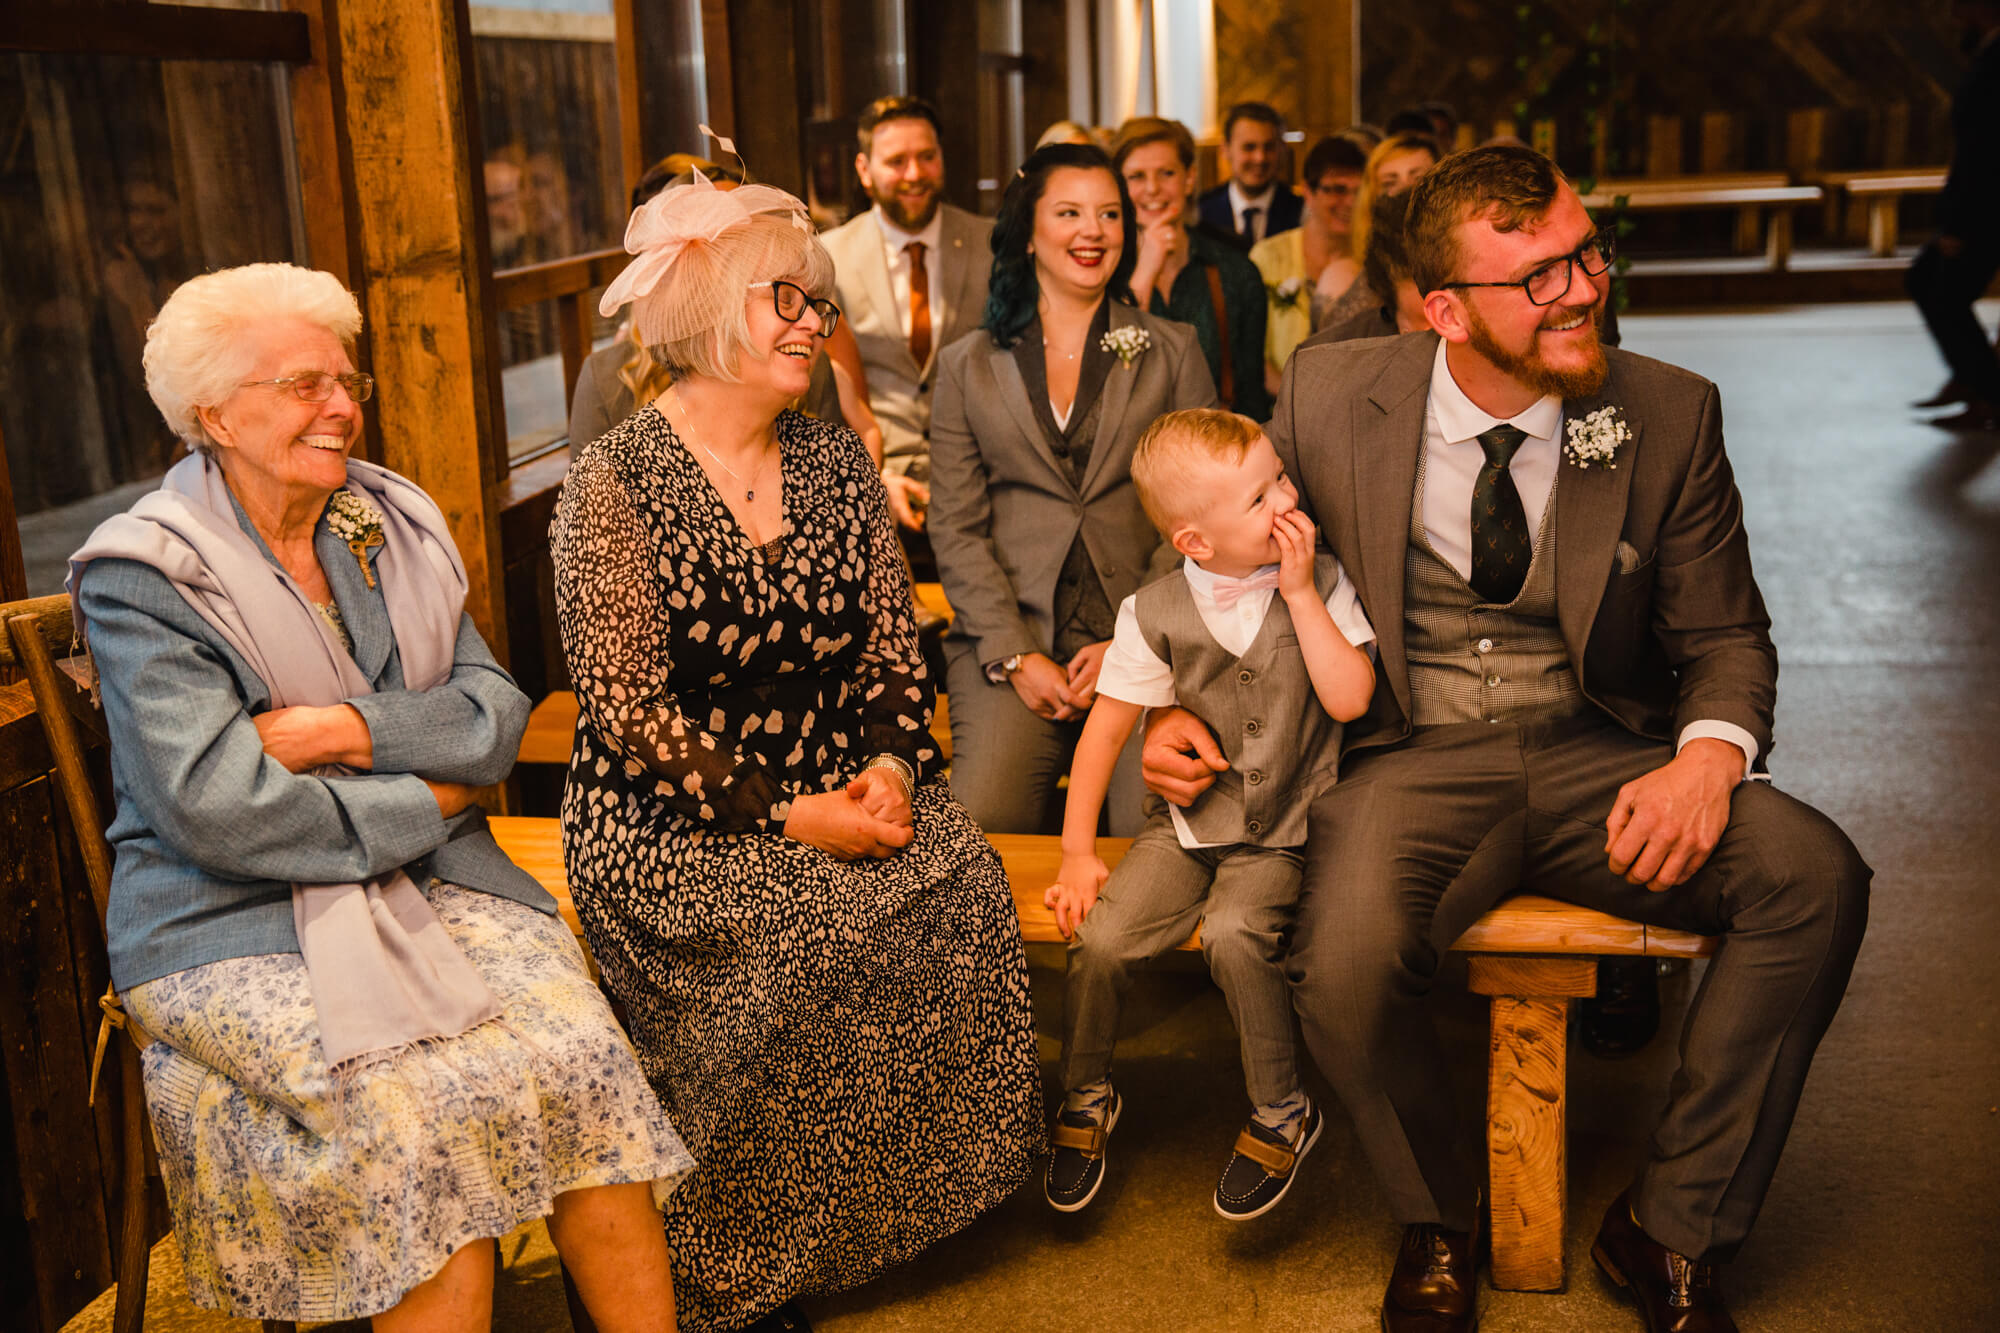 candid natural moment as grooms family watch wedding rings being exchanged by married couple